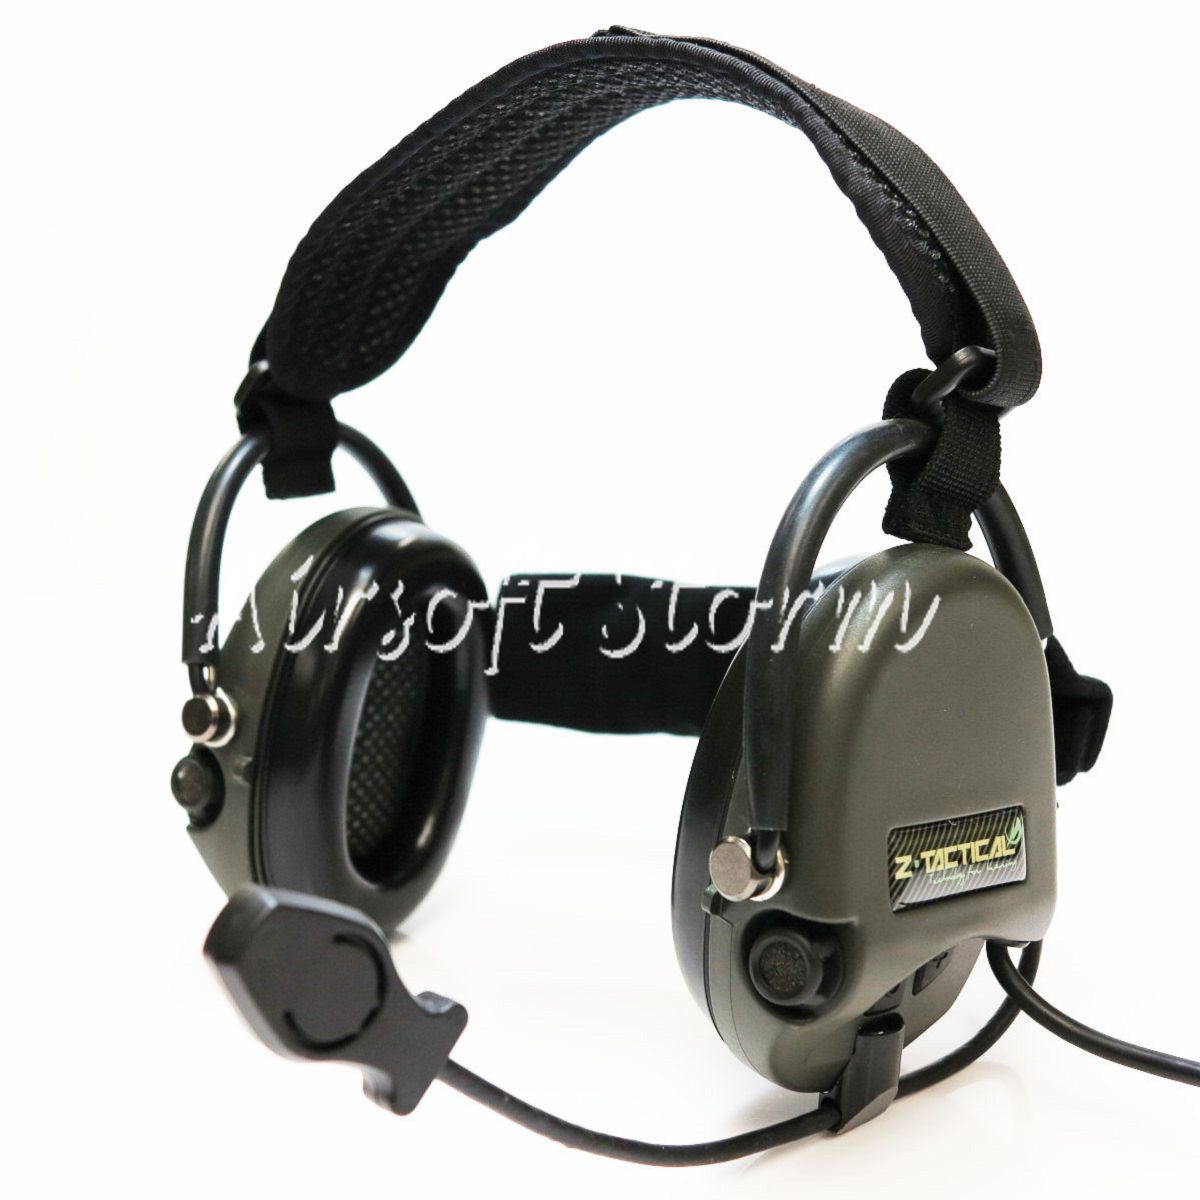 Airsoft Gear SWAT Z Tactical TCI Liberator II Neckband Headset Olive Drab OD/Black